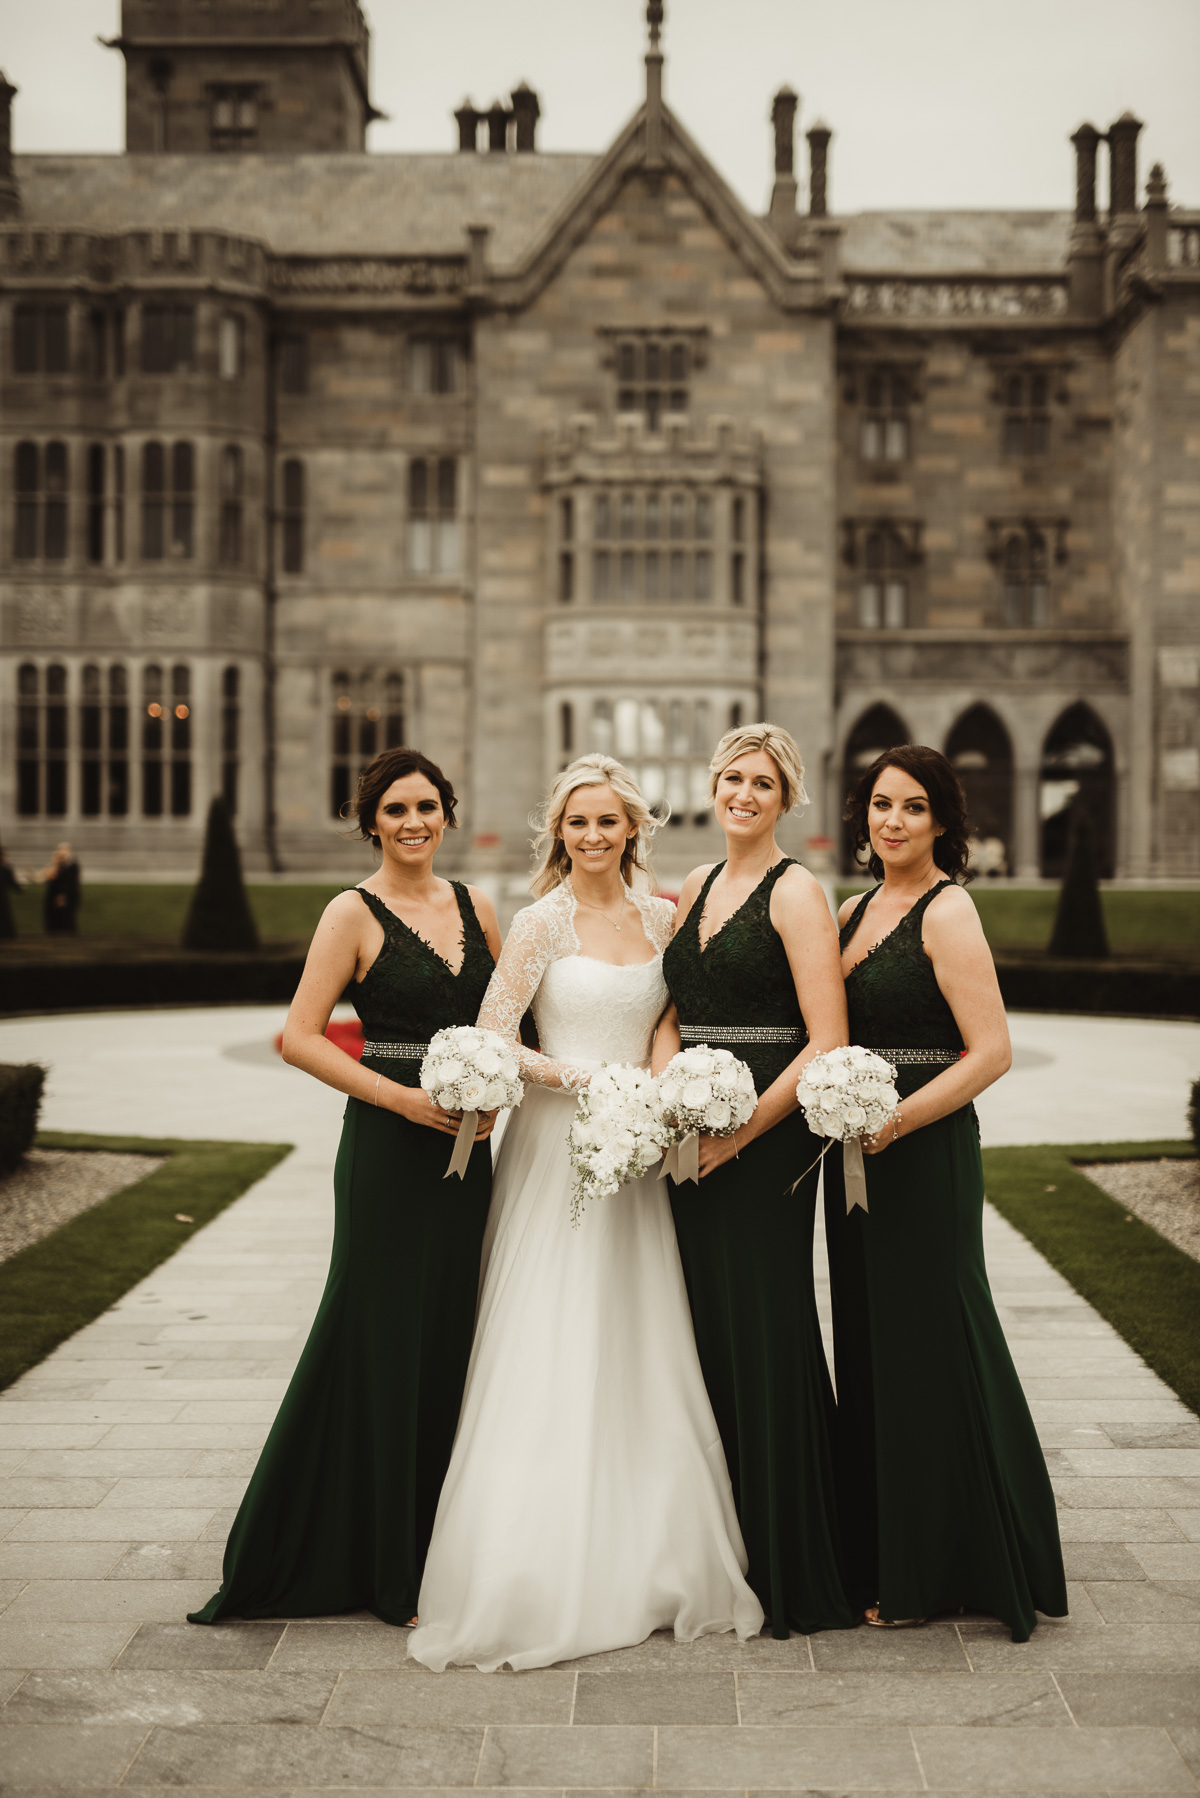 adare manor wedding 053